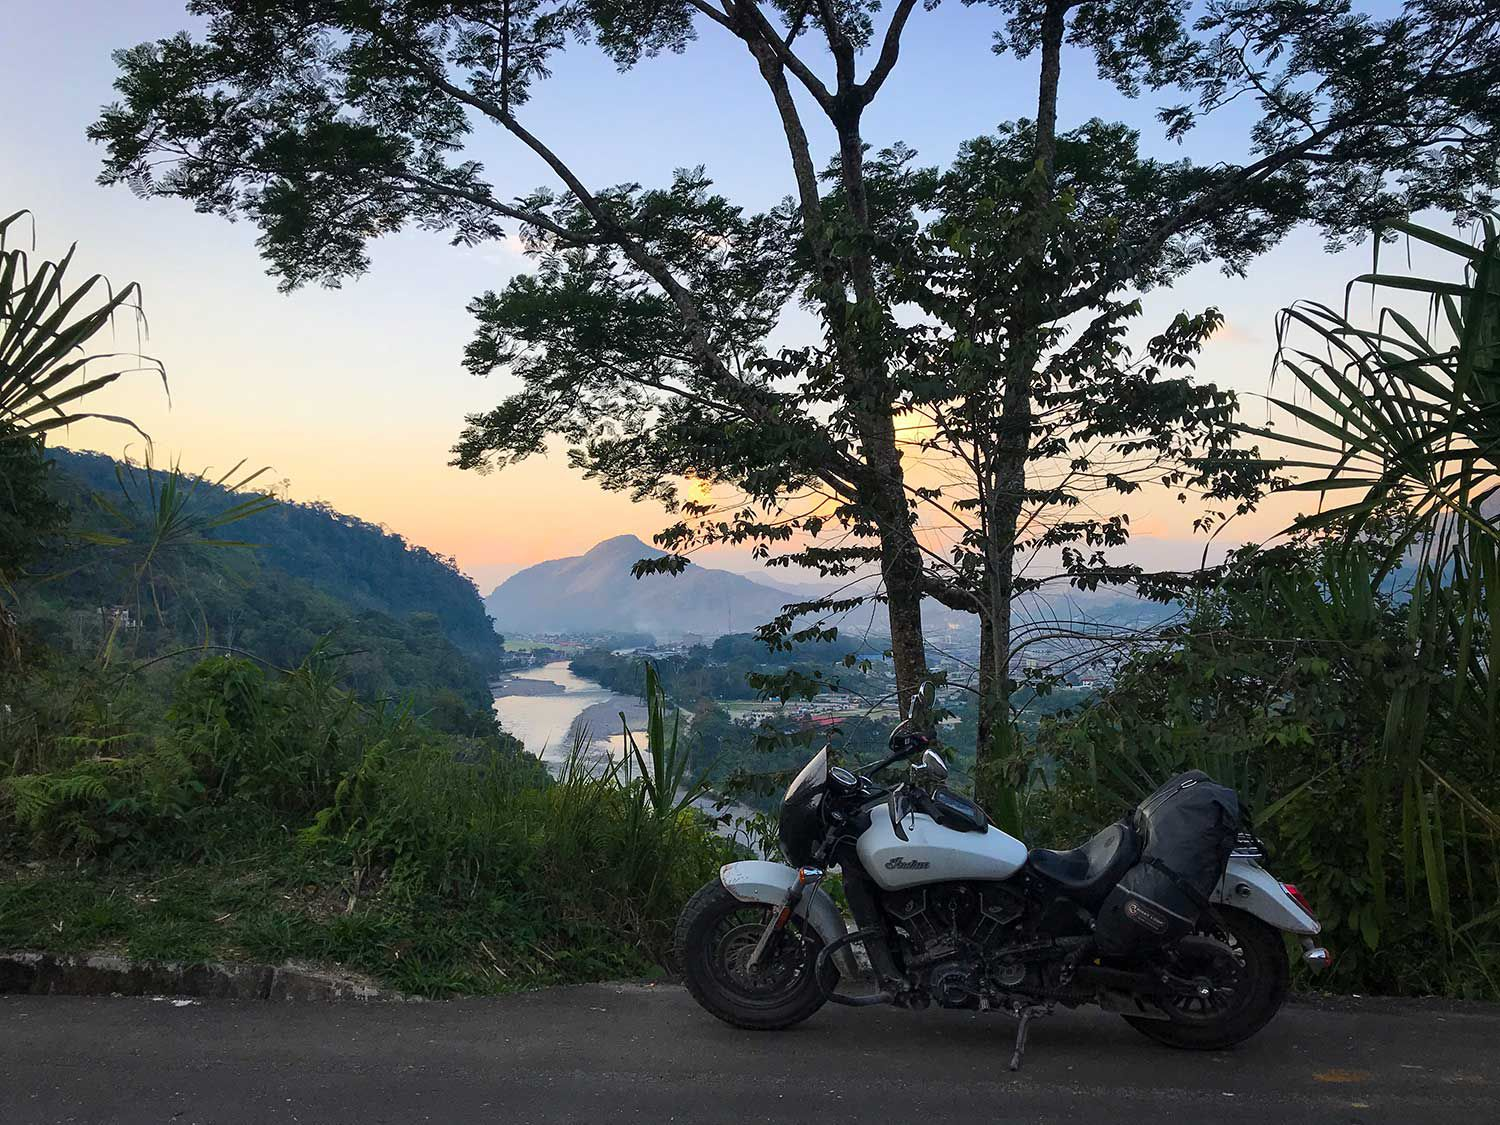 Riding an Indian Scout Sixty into the sunset on the Huallaga River, gateway to the Amazon.